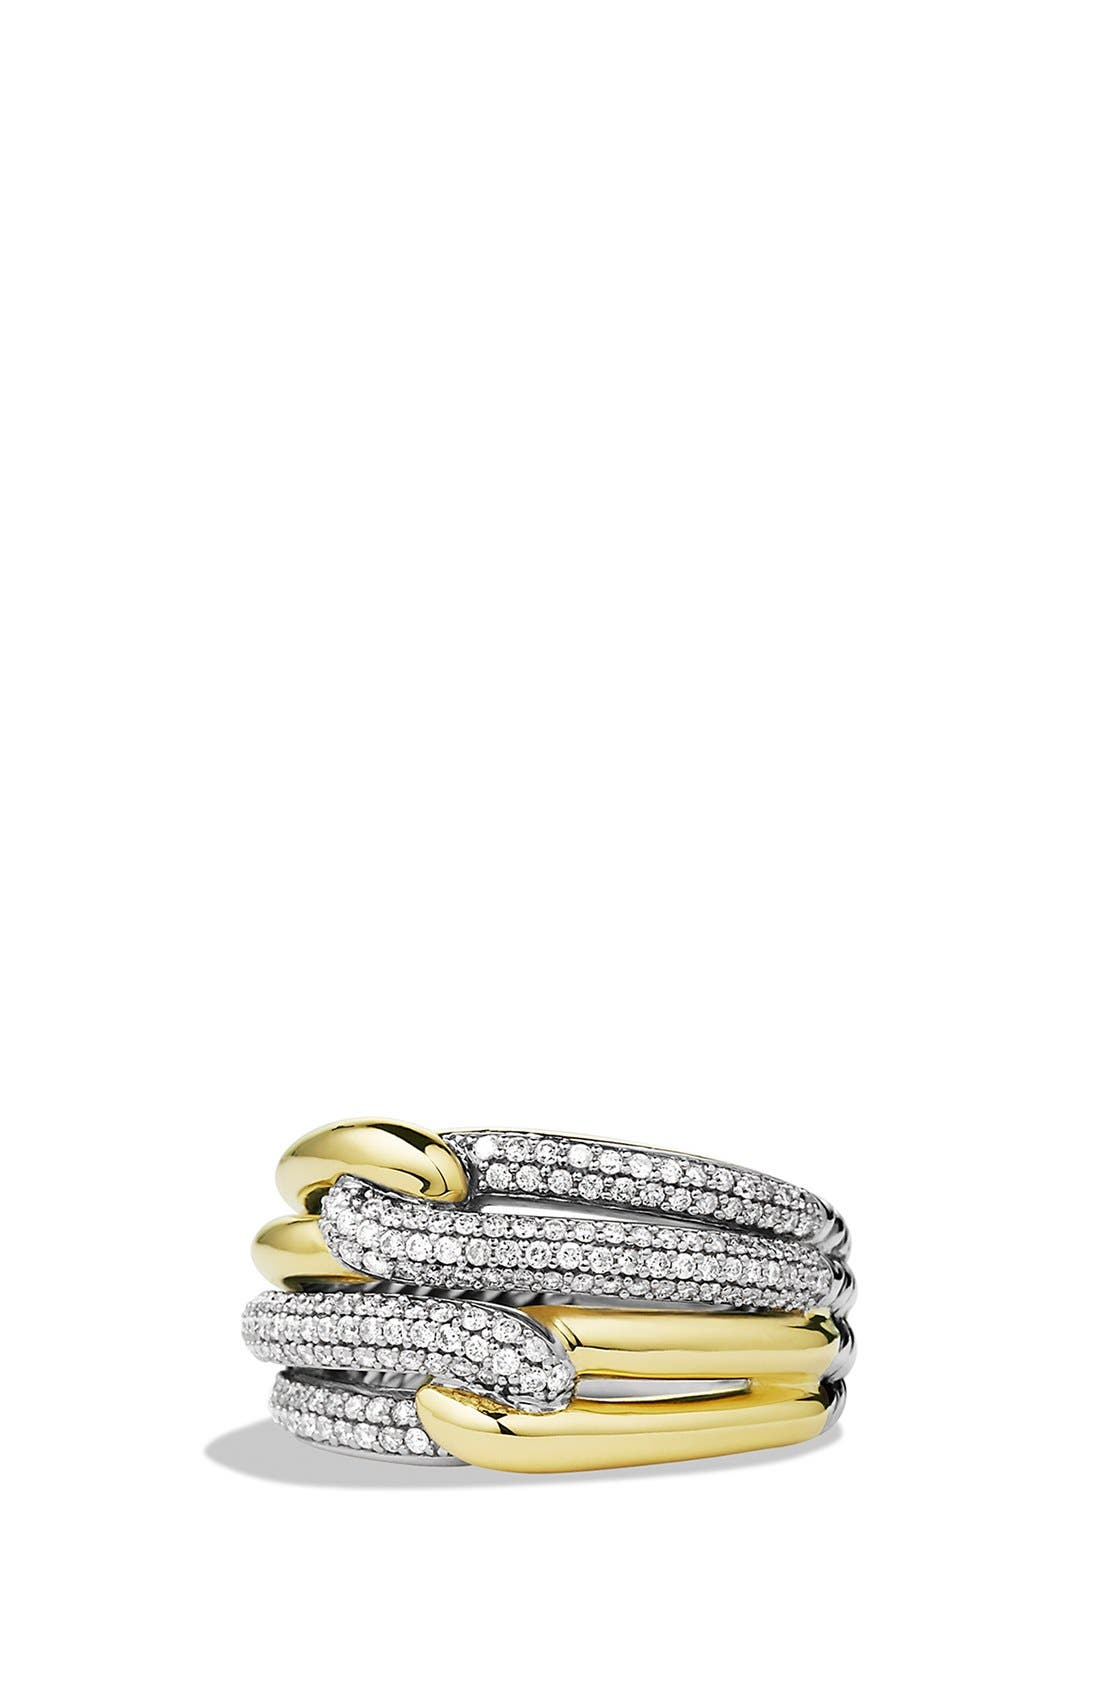 Alternate Image 1 Selected - David Yurman 'Labyrinth' Double Loop Ring with Diamonds and Gold